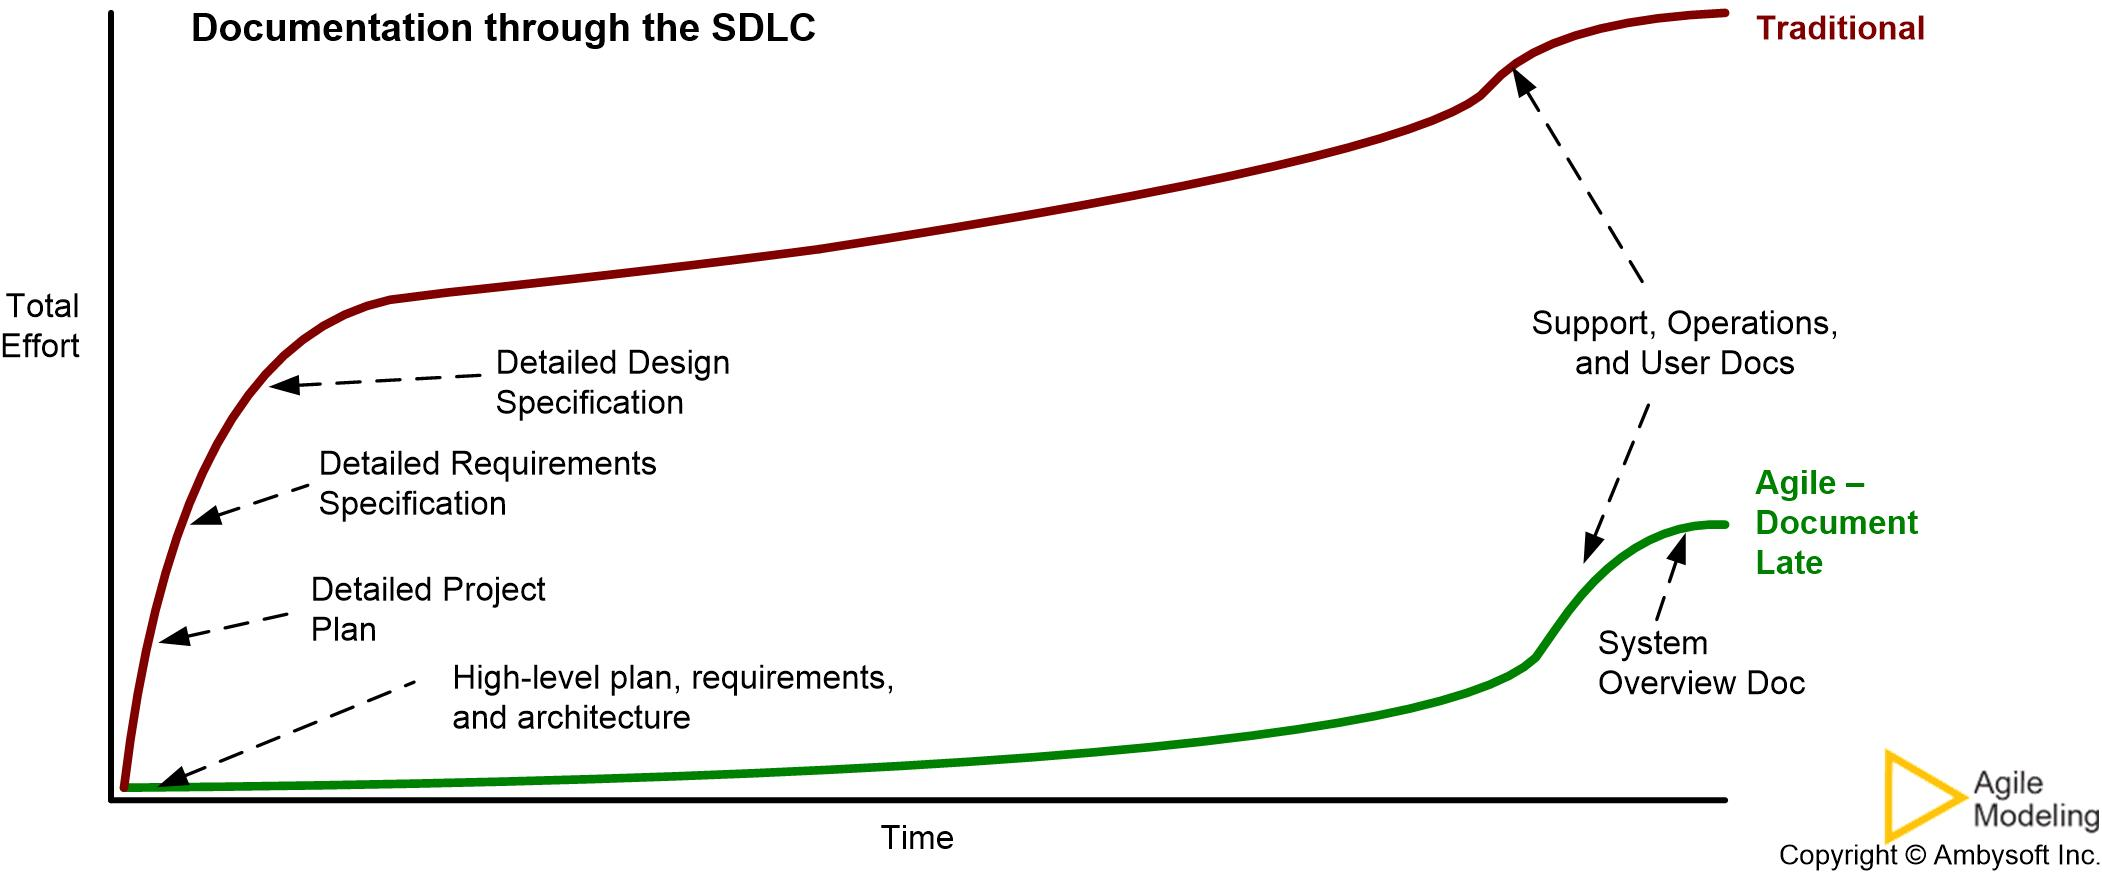 Agile Lean Documentation Strategies For Agile Software Development